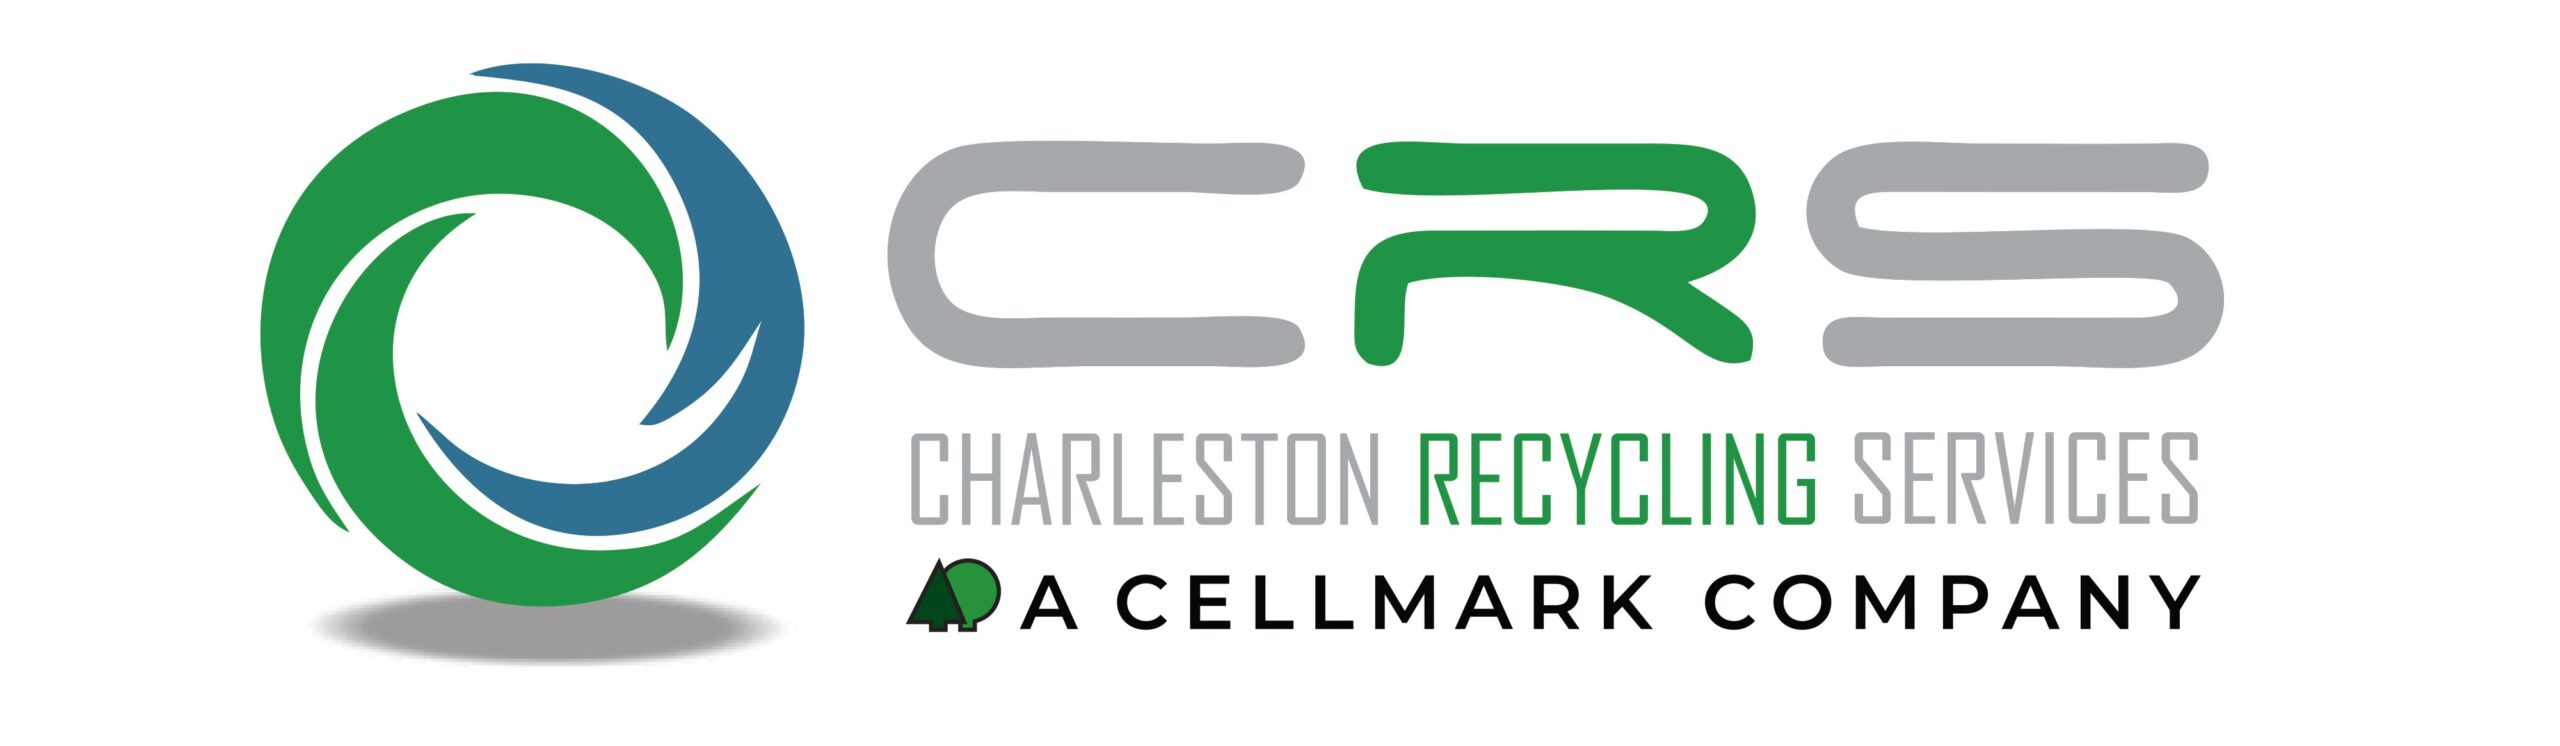 charleston recycling services logo on white background